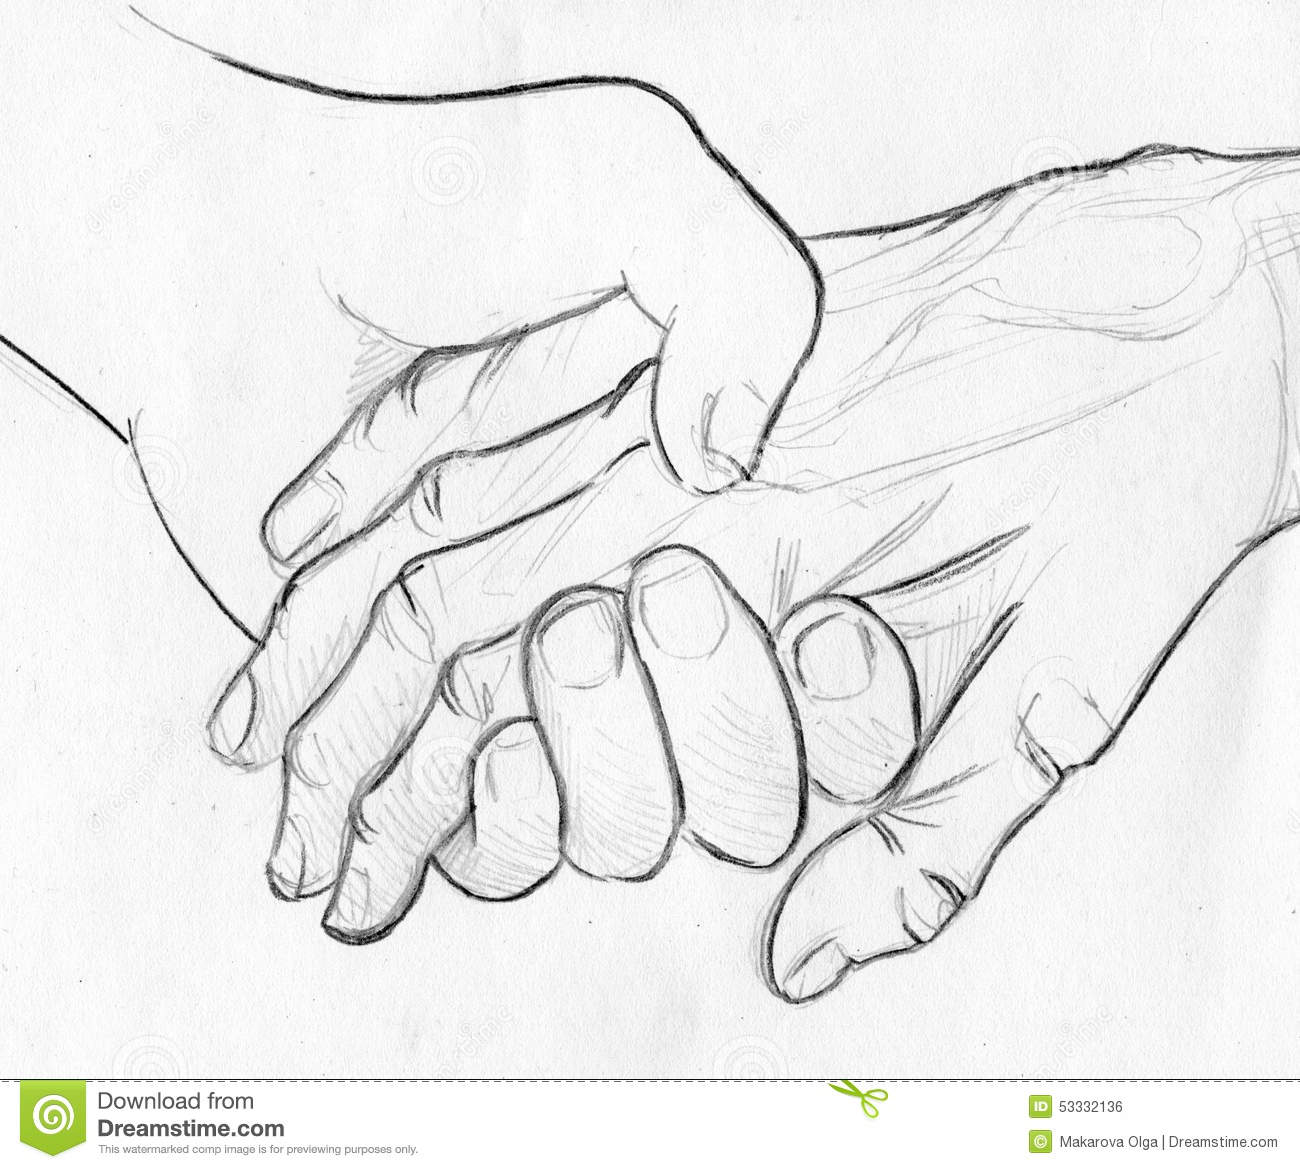 1300x1169 Gallery Hands Together Pencil Drawing,